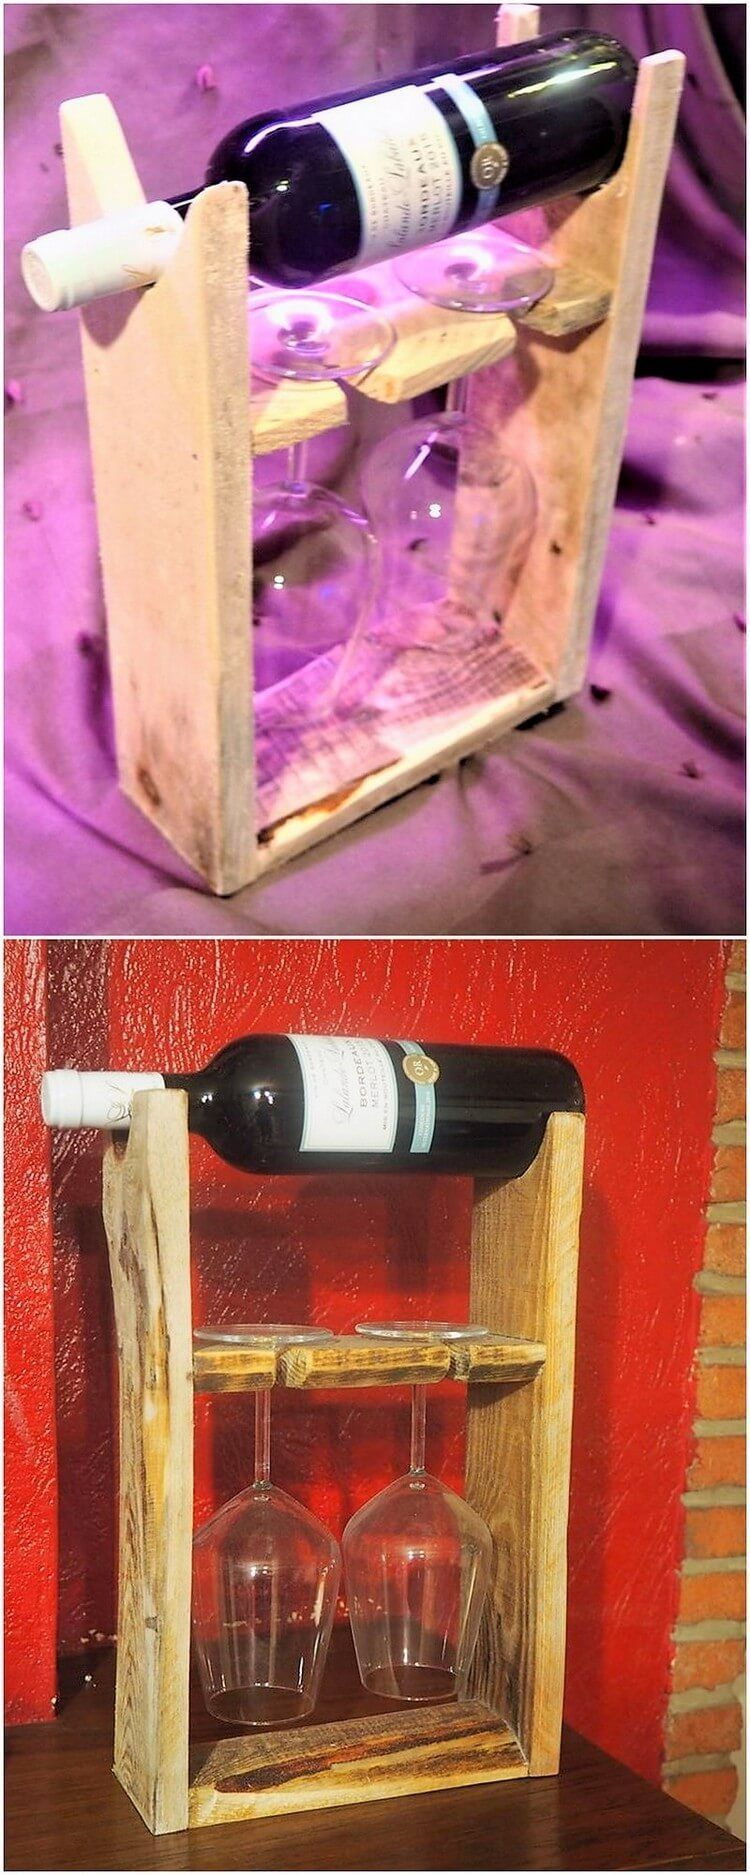 This Is Another Idea Of Using The Wood Pallet In The Creation Of The Wine Rack Wit Suportes Para Garrafas De Vinho Suportes Para Garrafas Porta Vinho De Parede